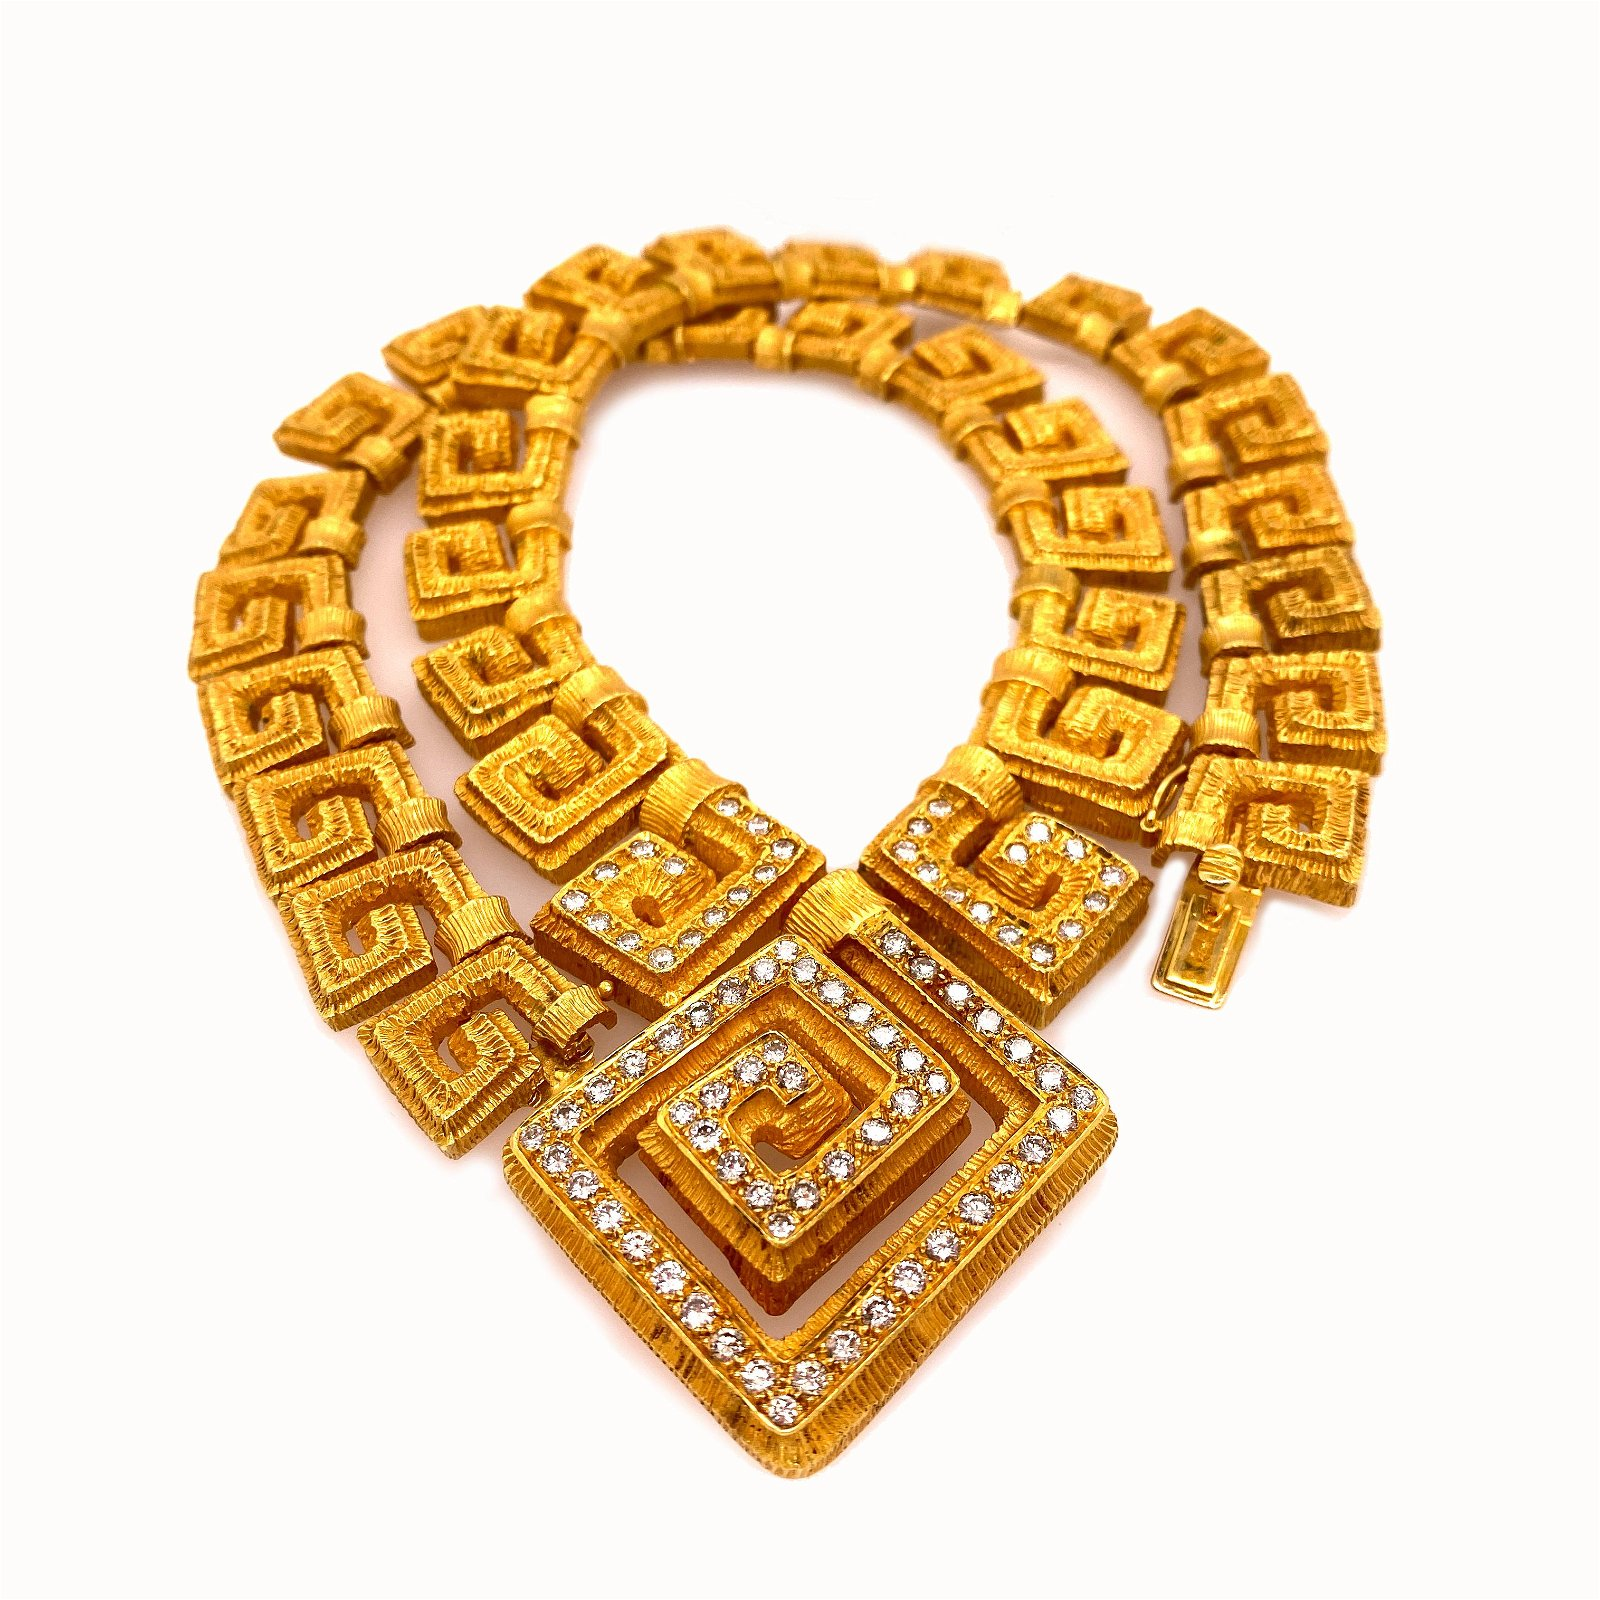 18 k yellow Gold and Diamonds Greek Necklace